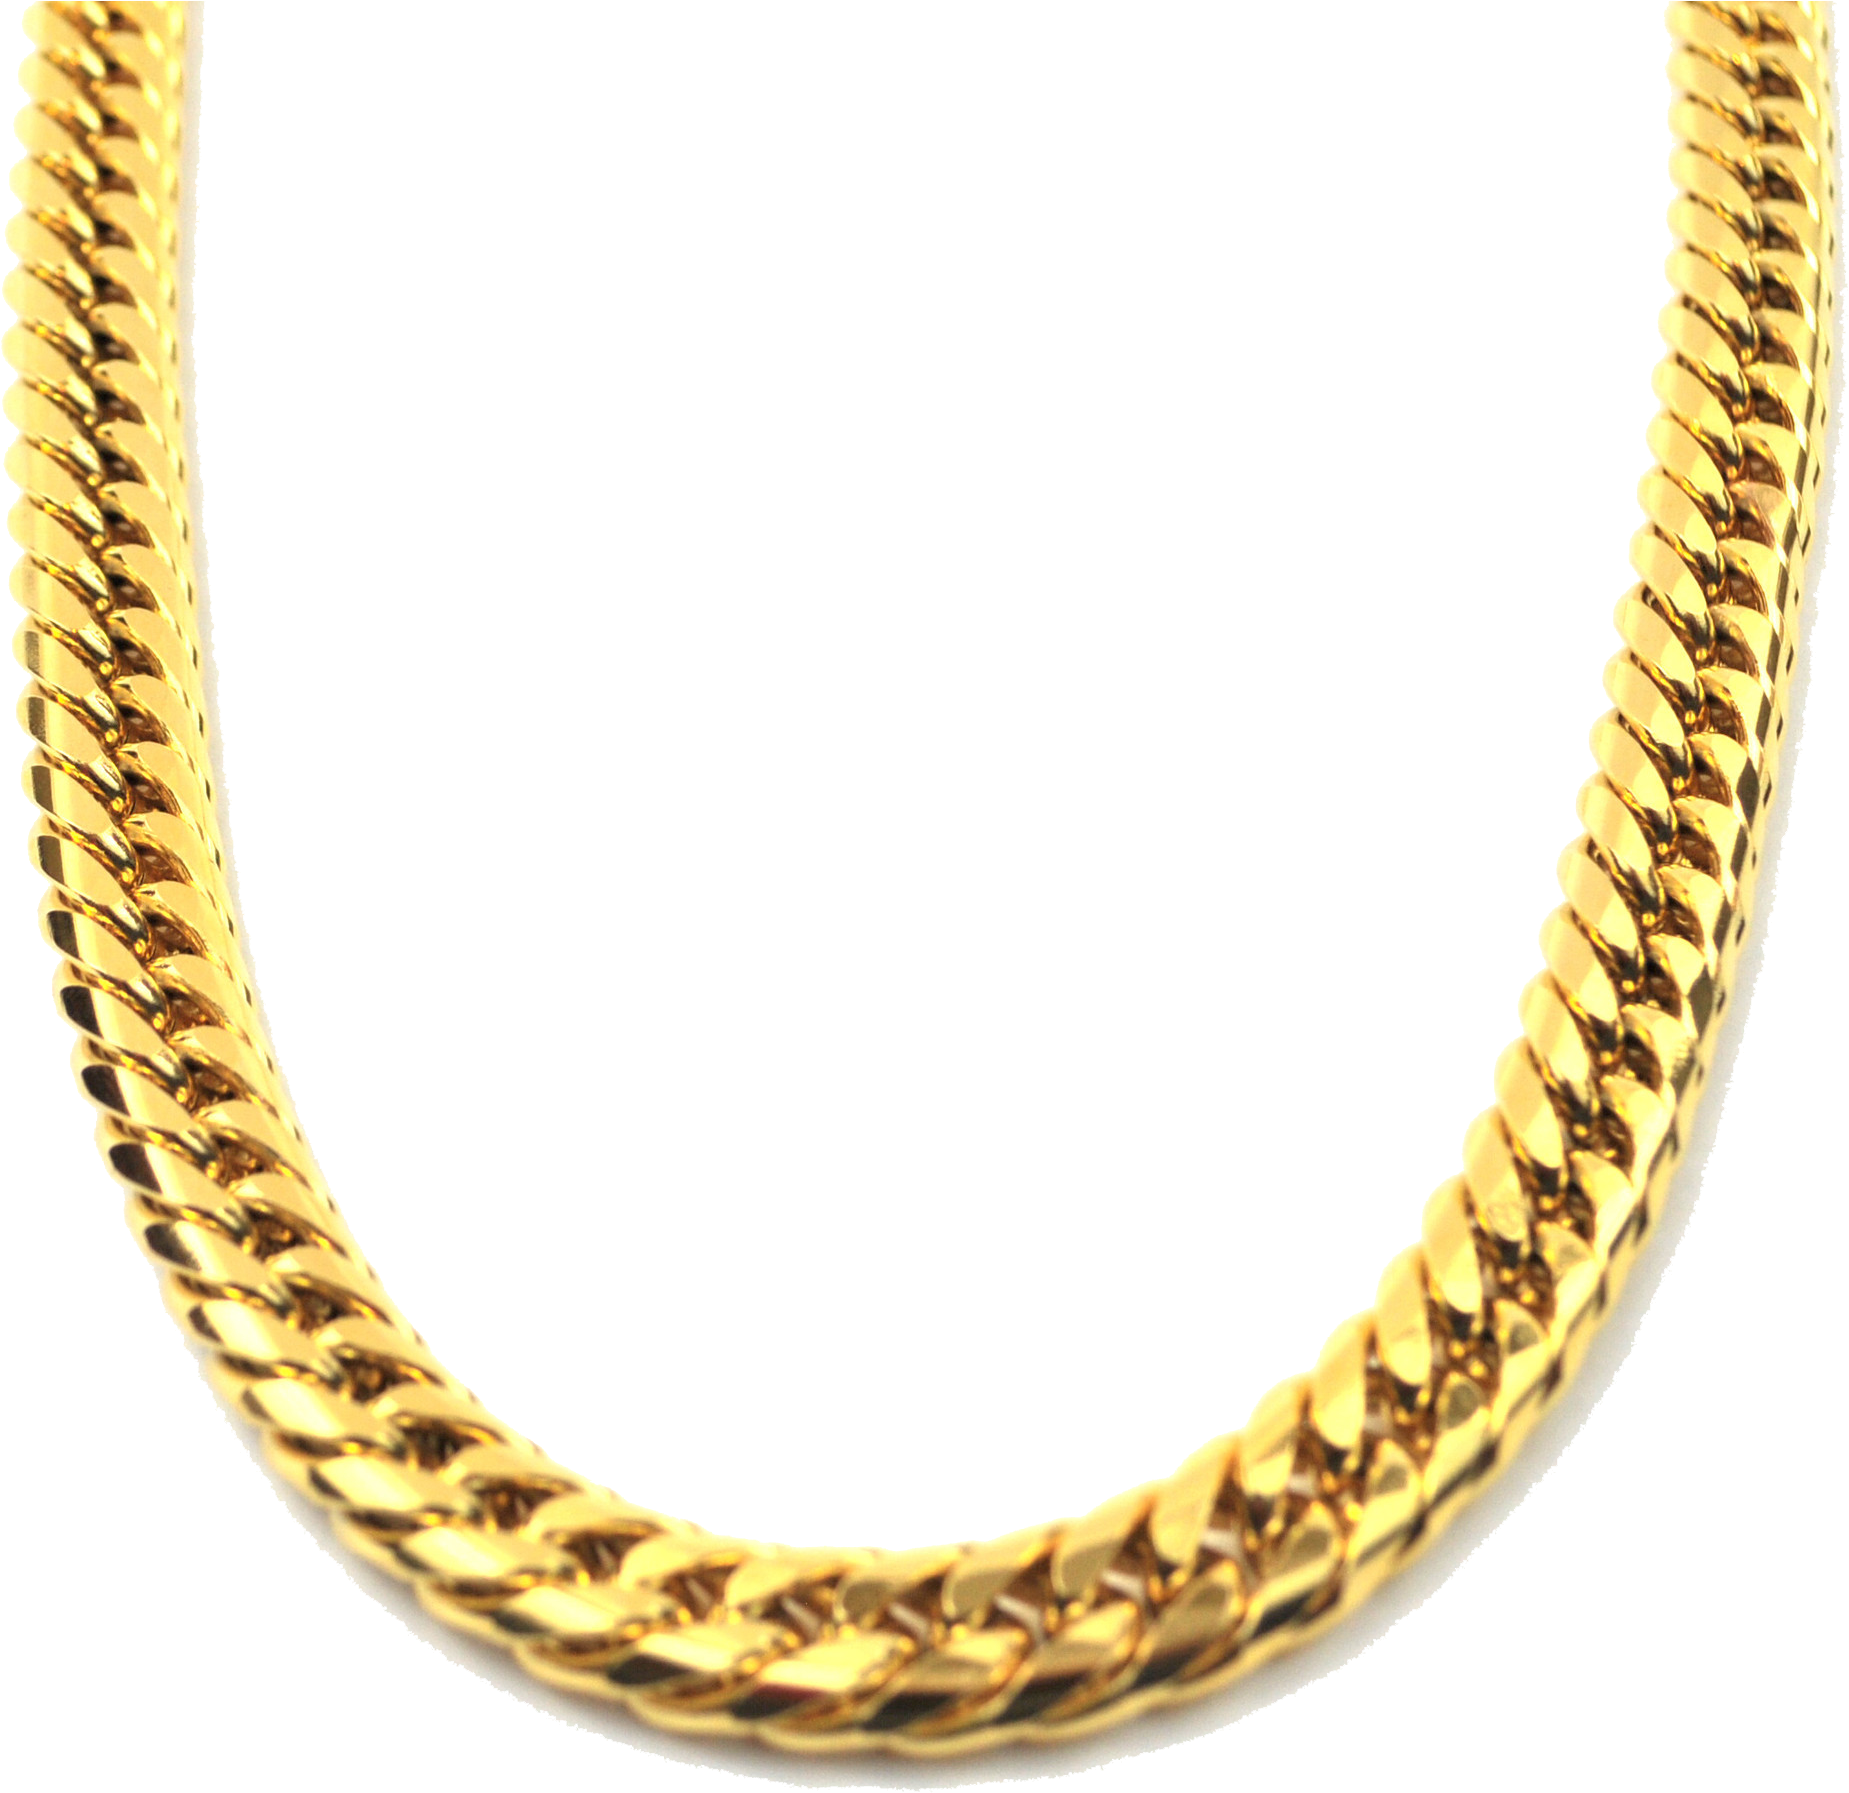 Cuban link clipart graphic transparent download HD Jewellery Chain Png Clipart - Gold Gods Cuban Link Chain ... graphic transparent download